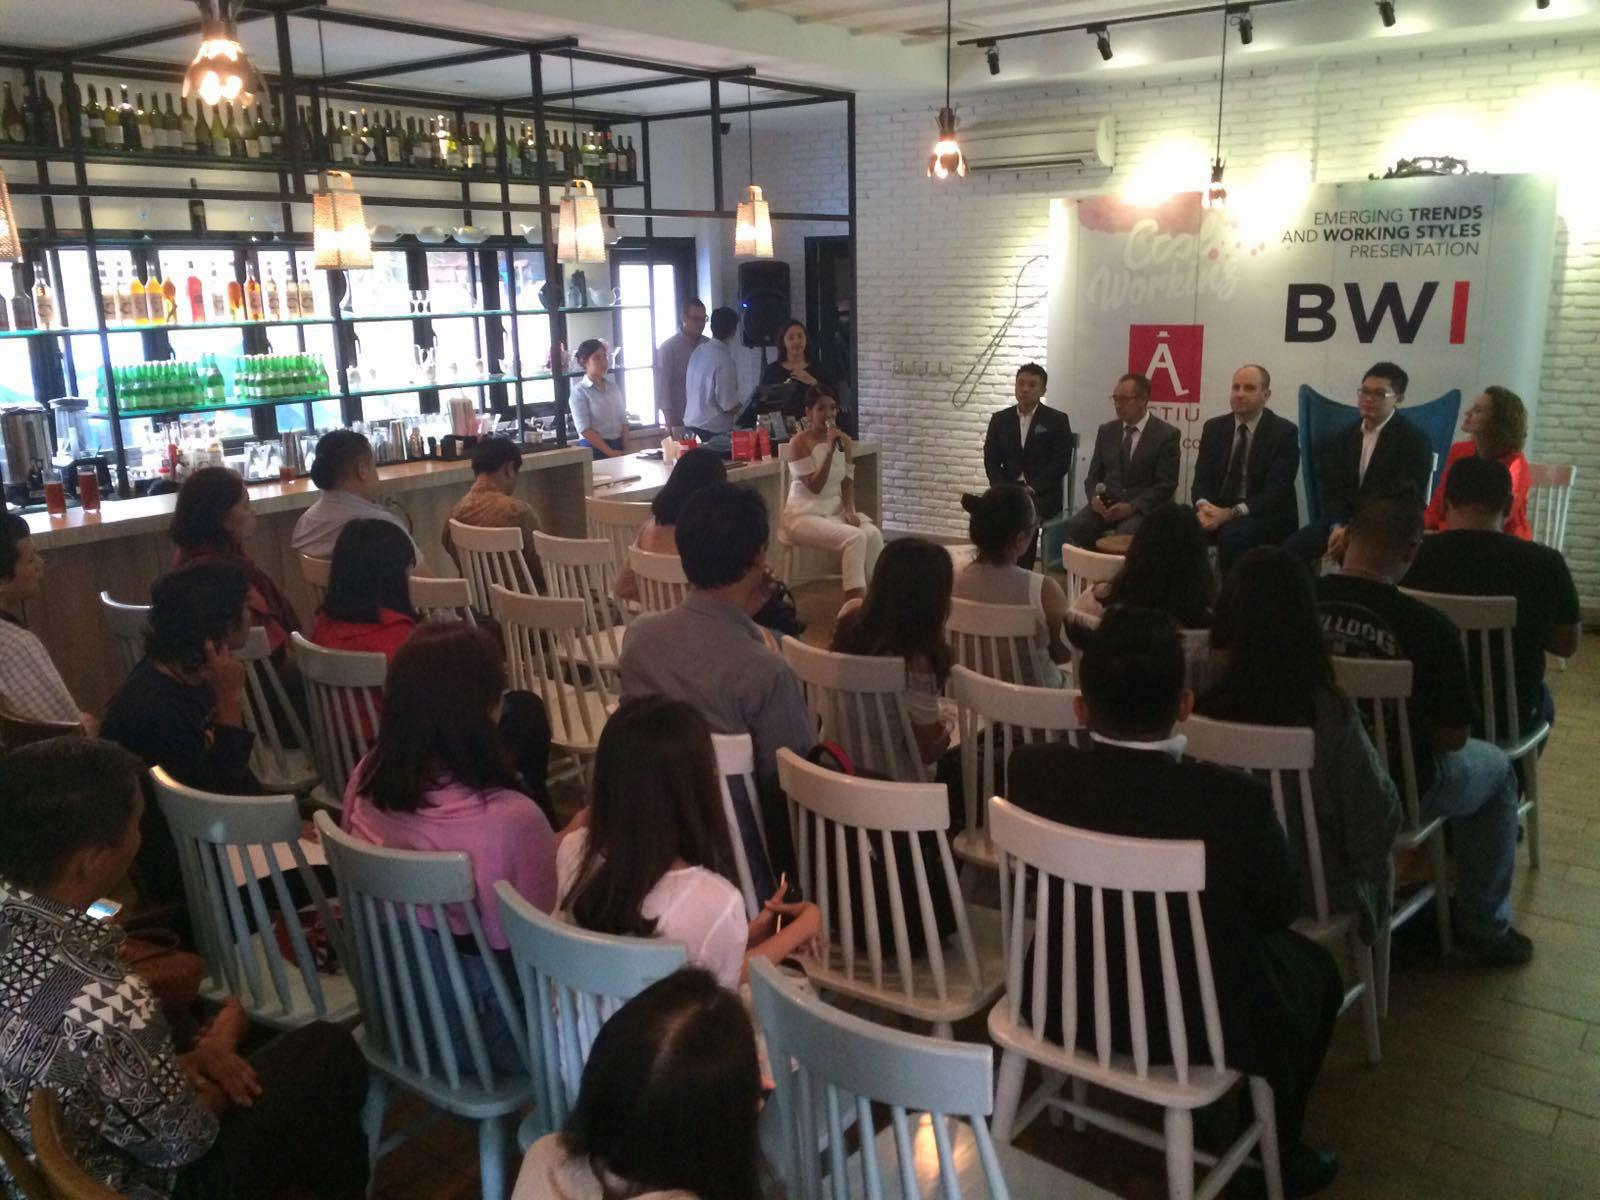 In a multitudinous event, BWI introduces the brand Actiu to the Indonesian market 1